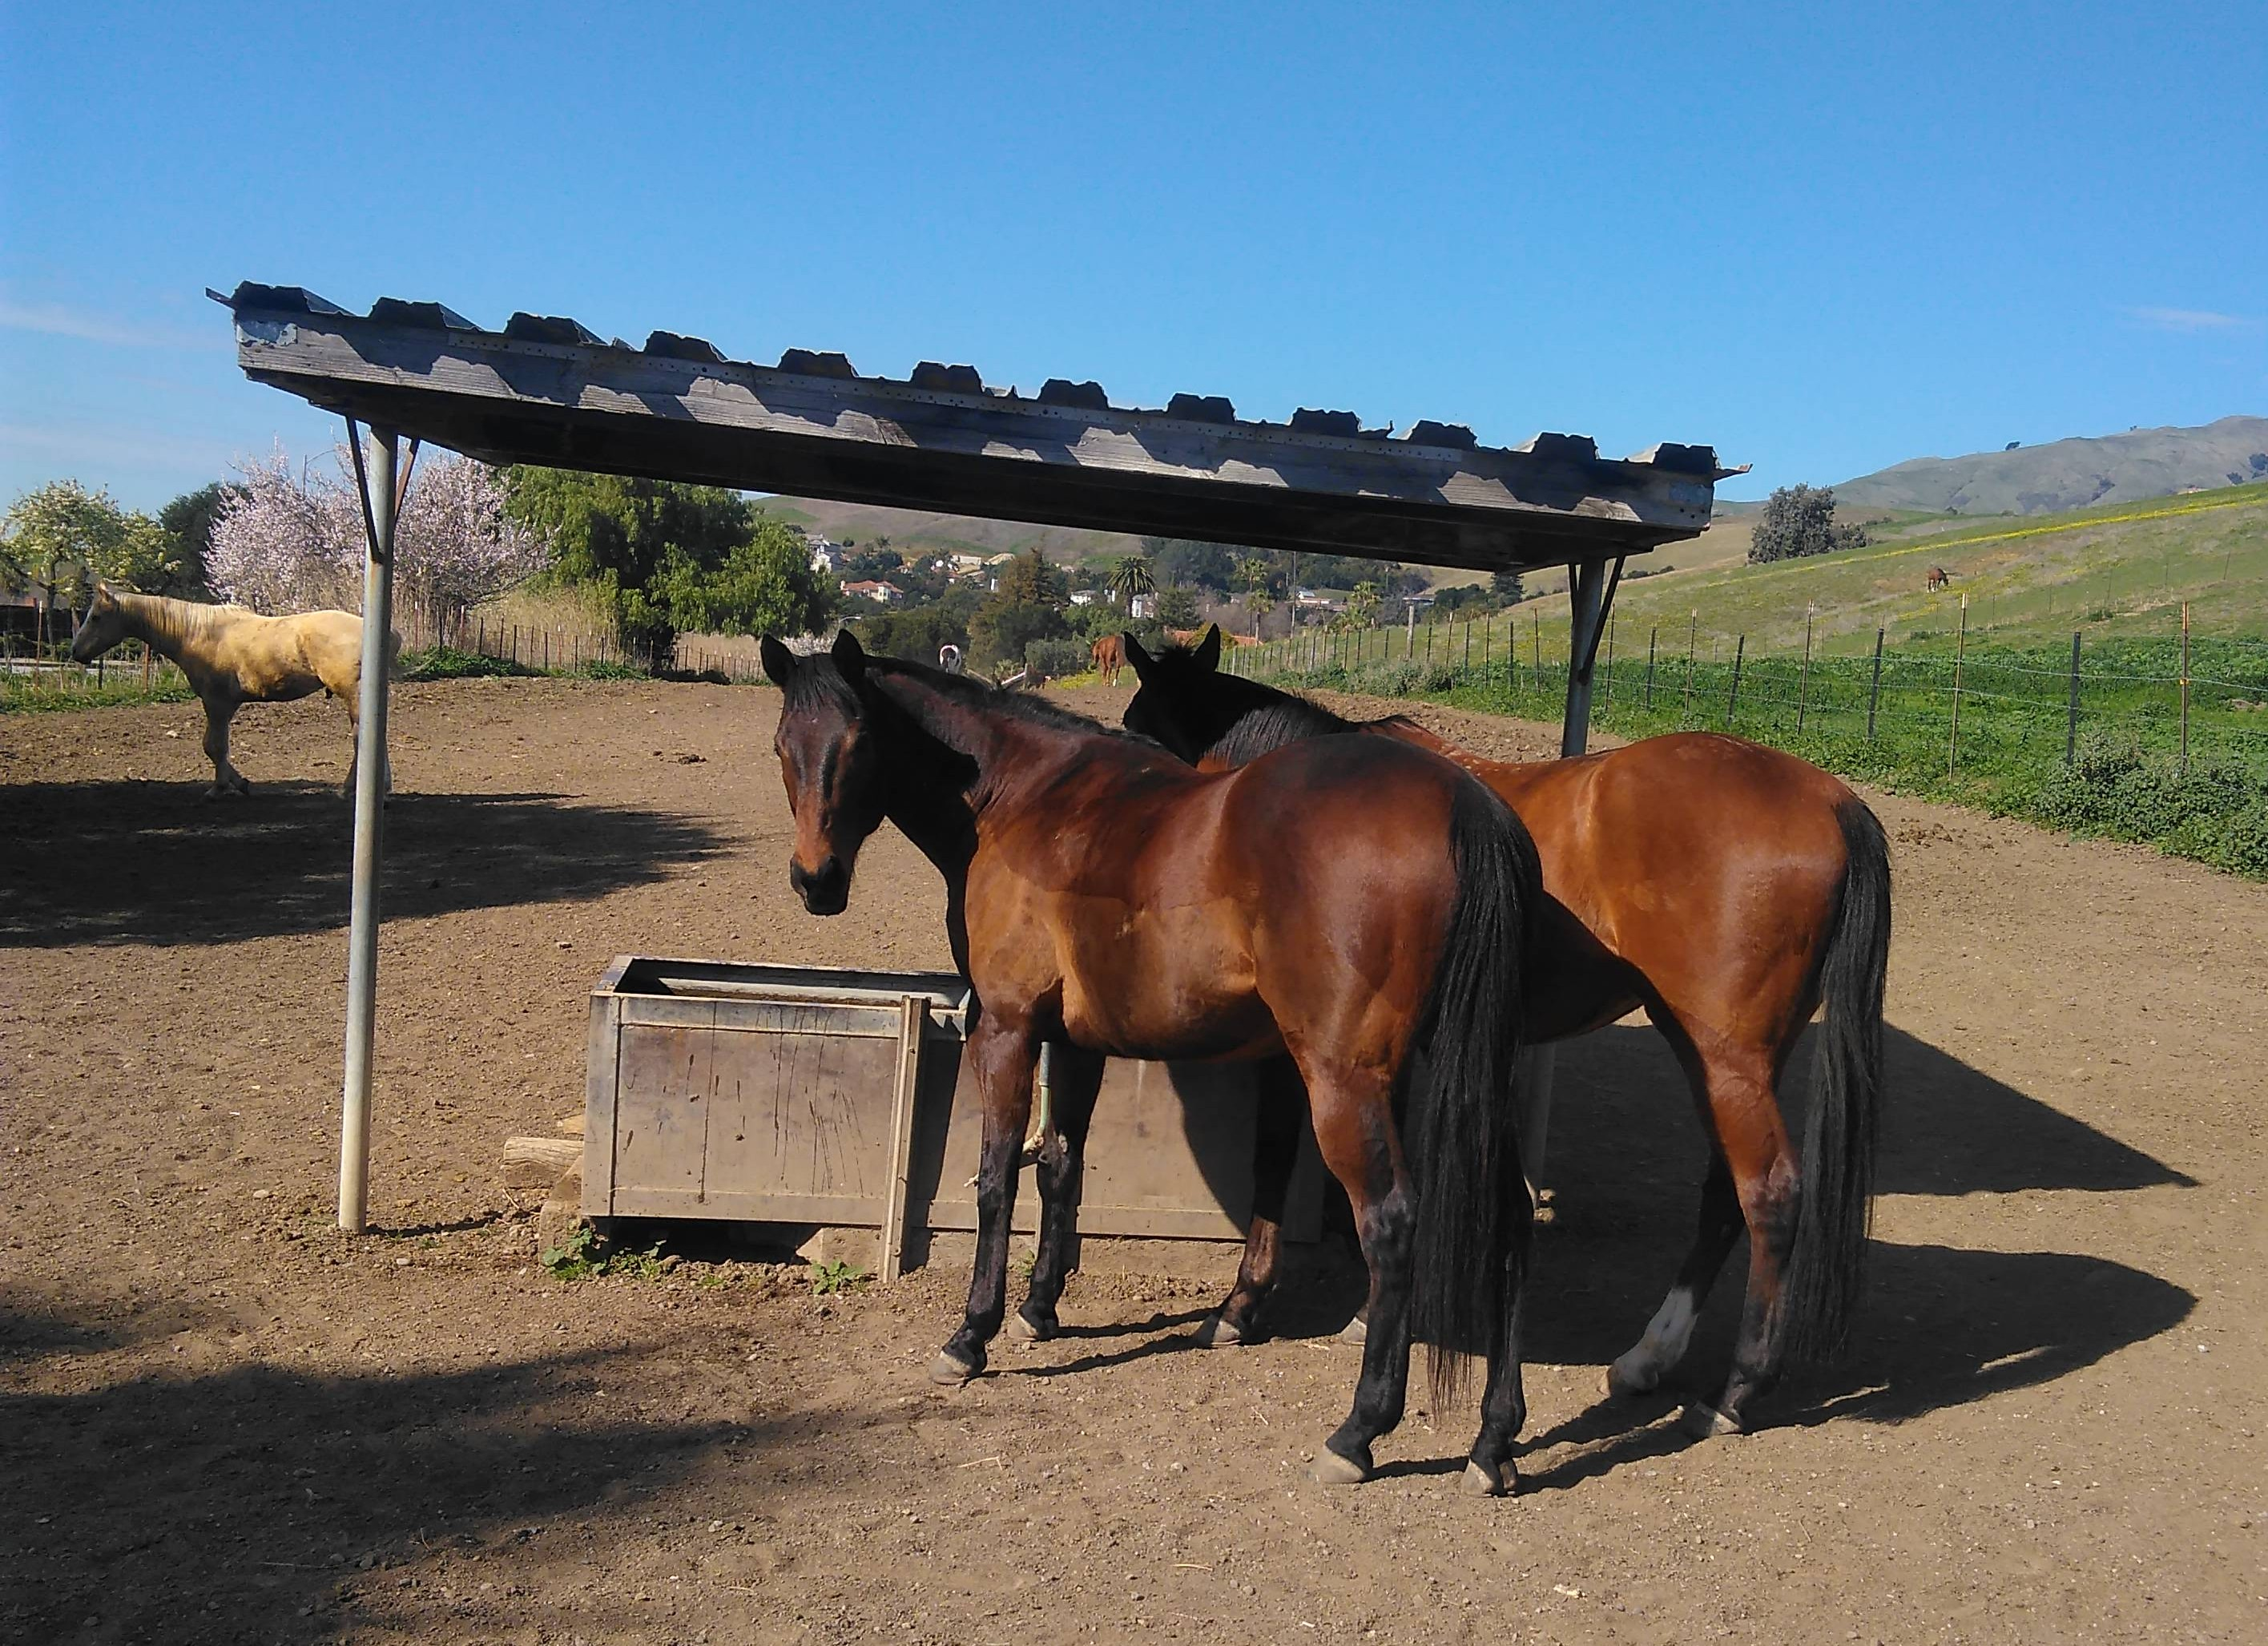 Horses in a Natural, Relaxed State